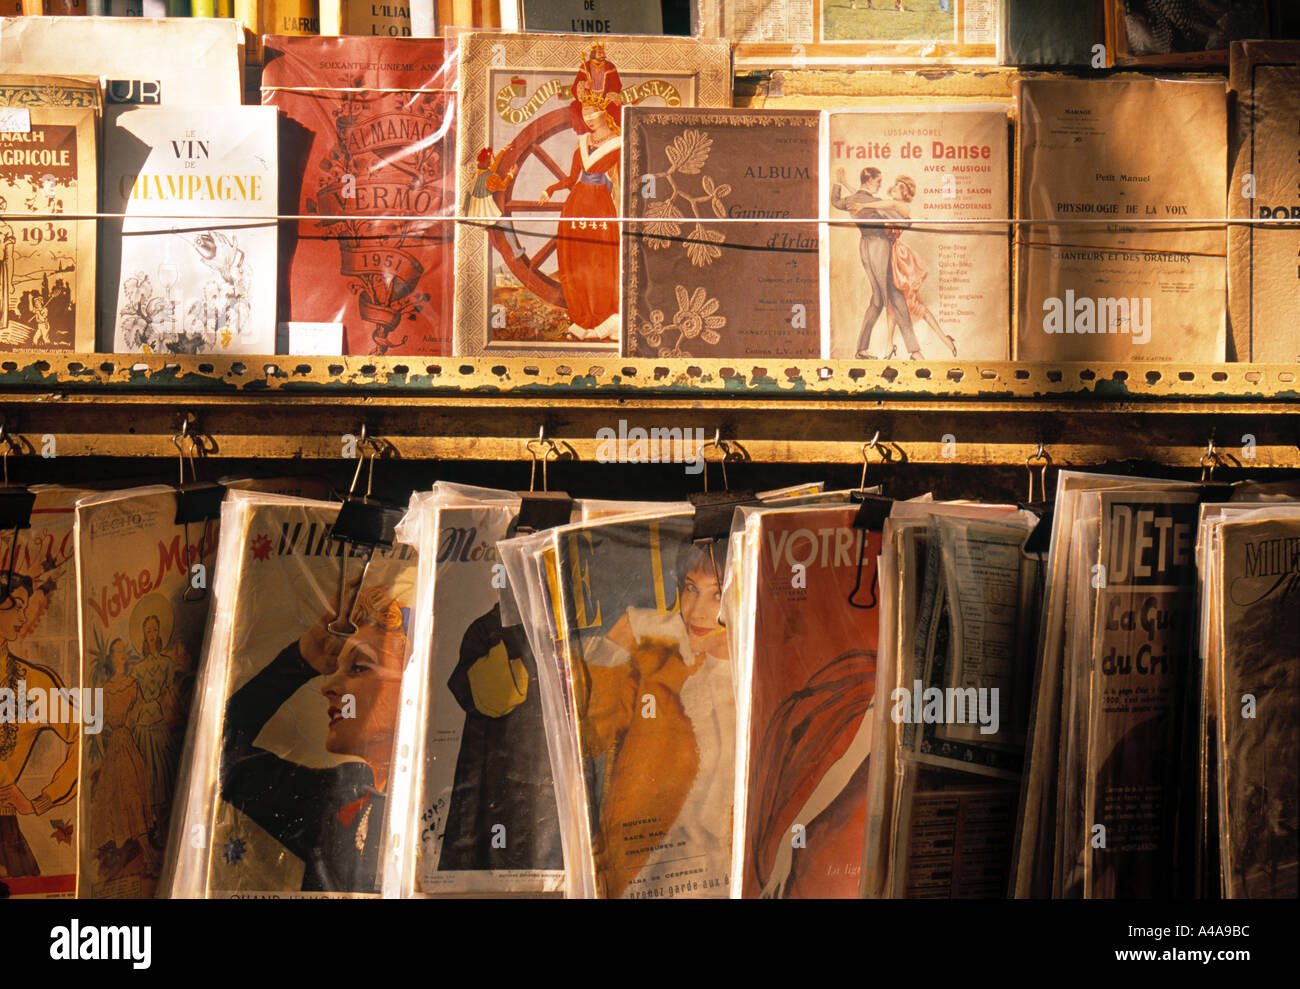 Bookstalls on the Left Bank, Paris, France - Stock Image